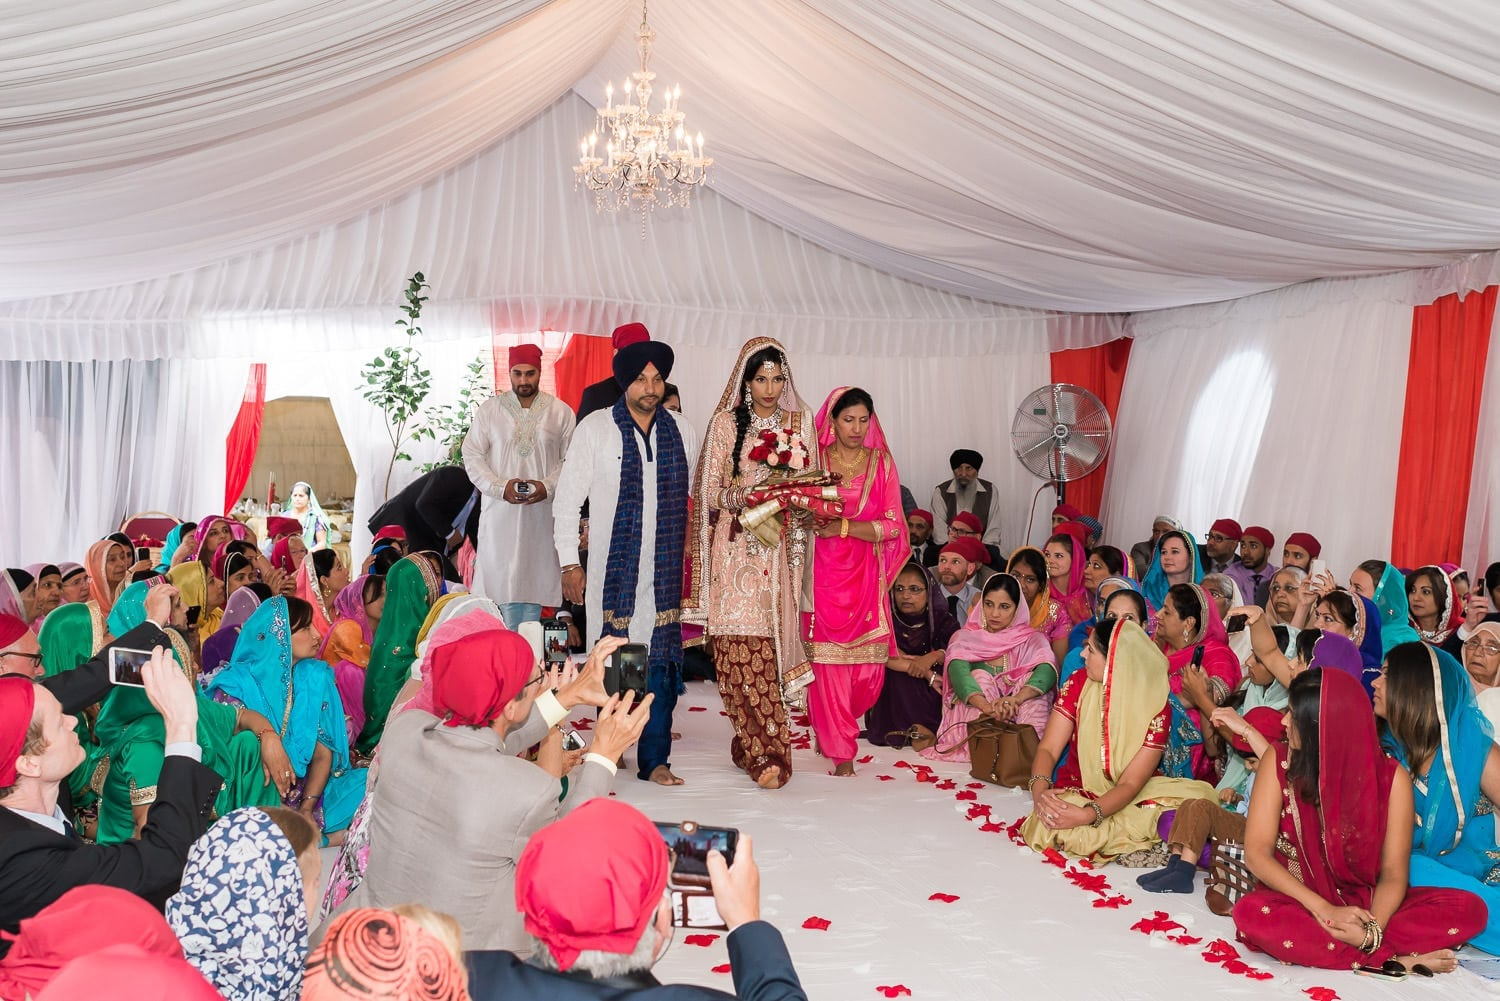 Brides entrance, Indian and Norwegian wedding | Vancouver Indian wedding photographer